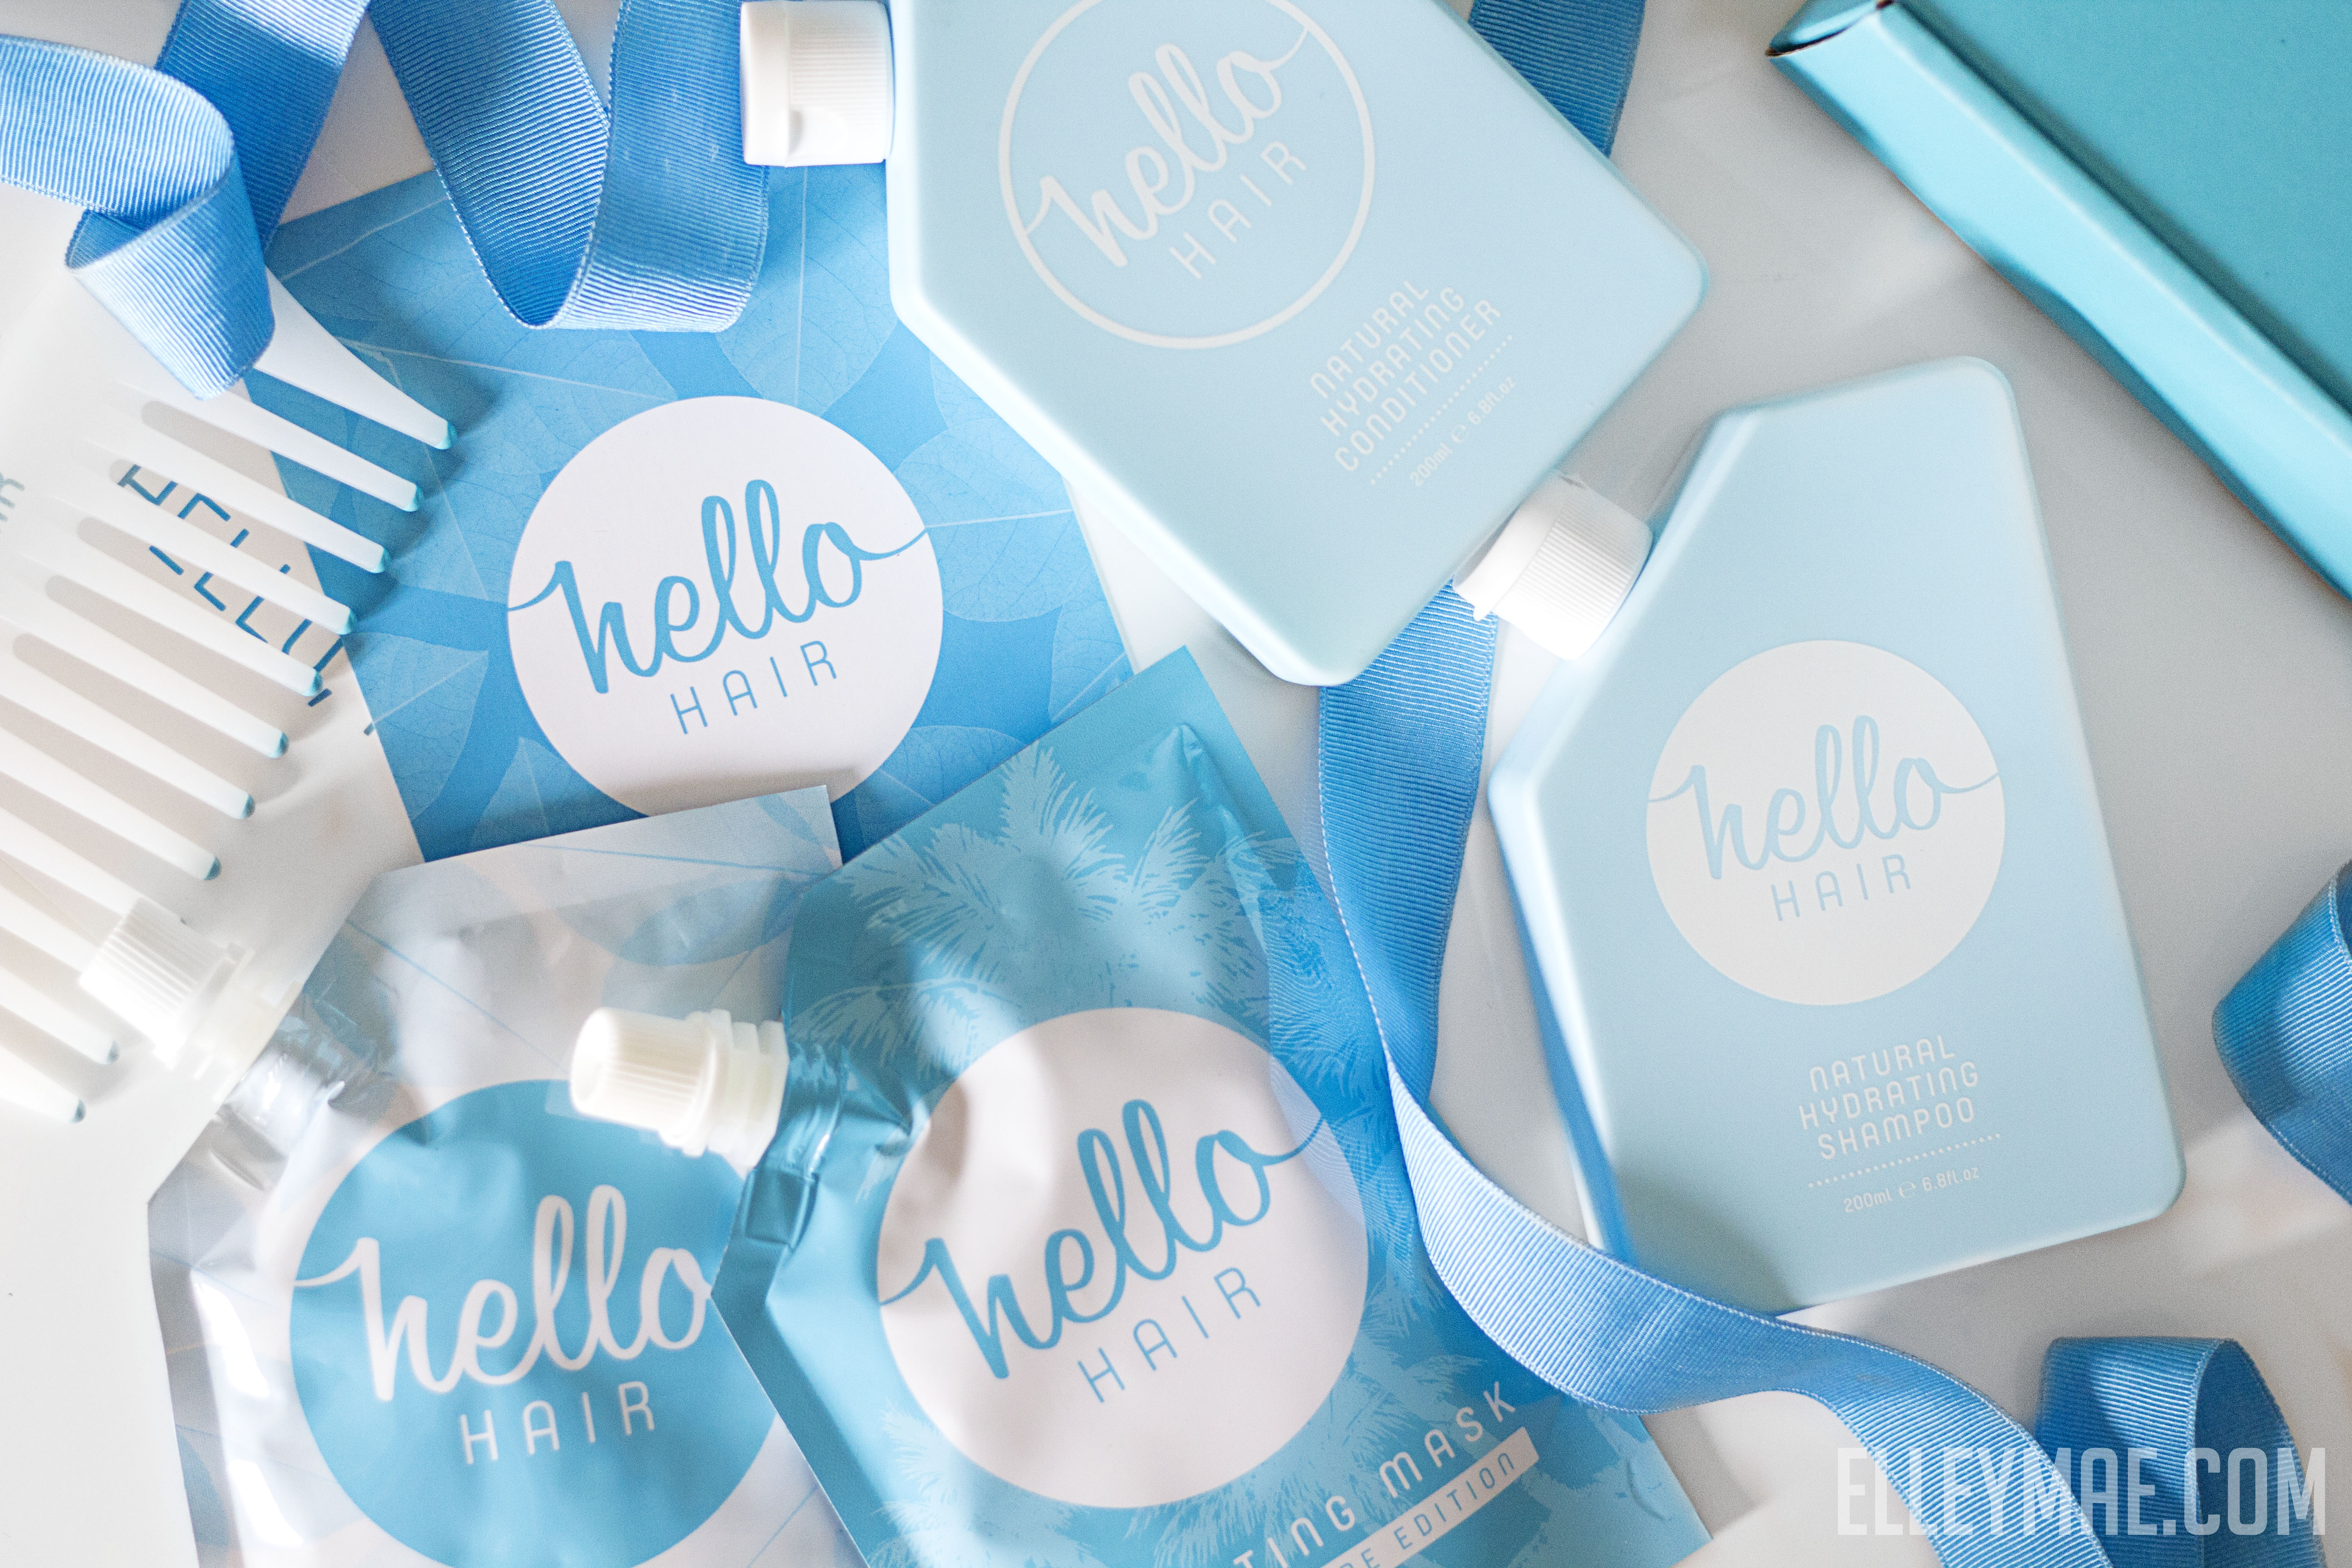 Want To Know What I Really Think of Hello Hair?   ElleyMae.com